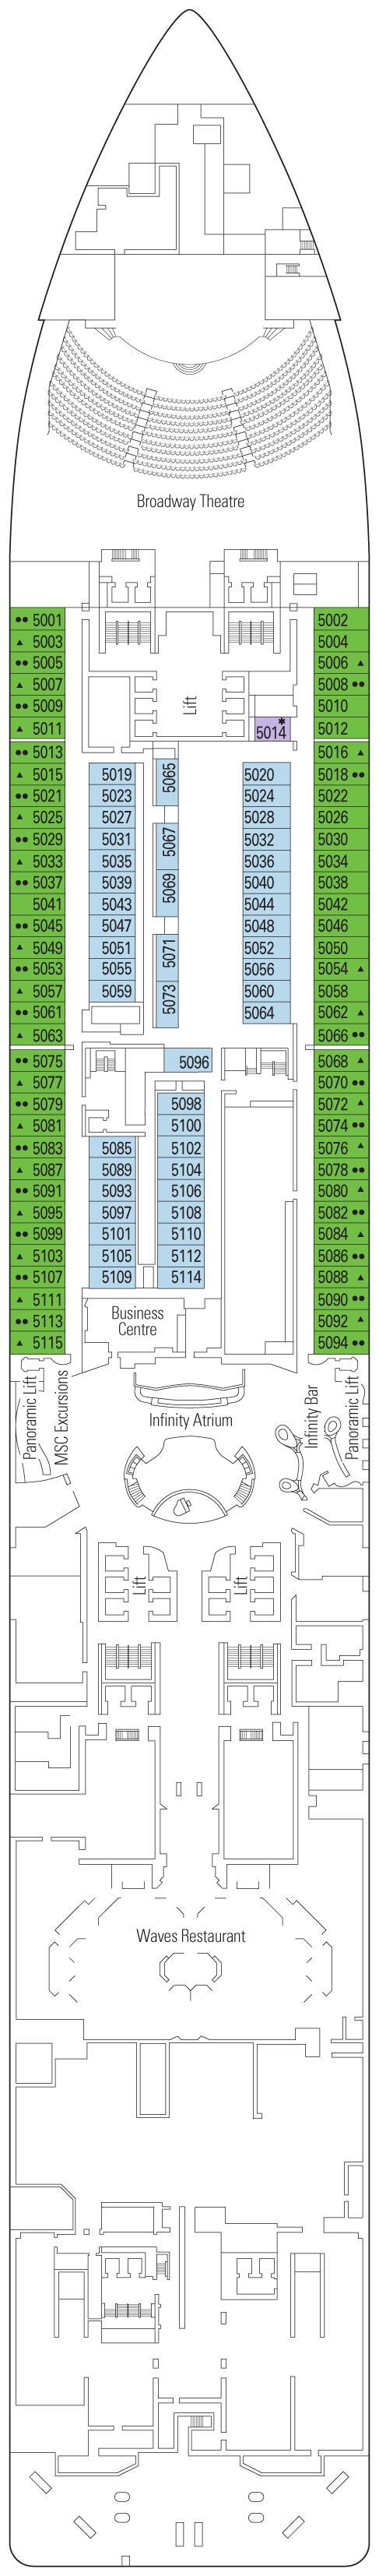 Deck 5 - Colosseo